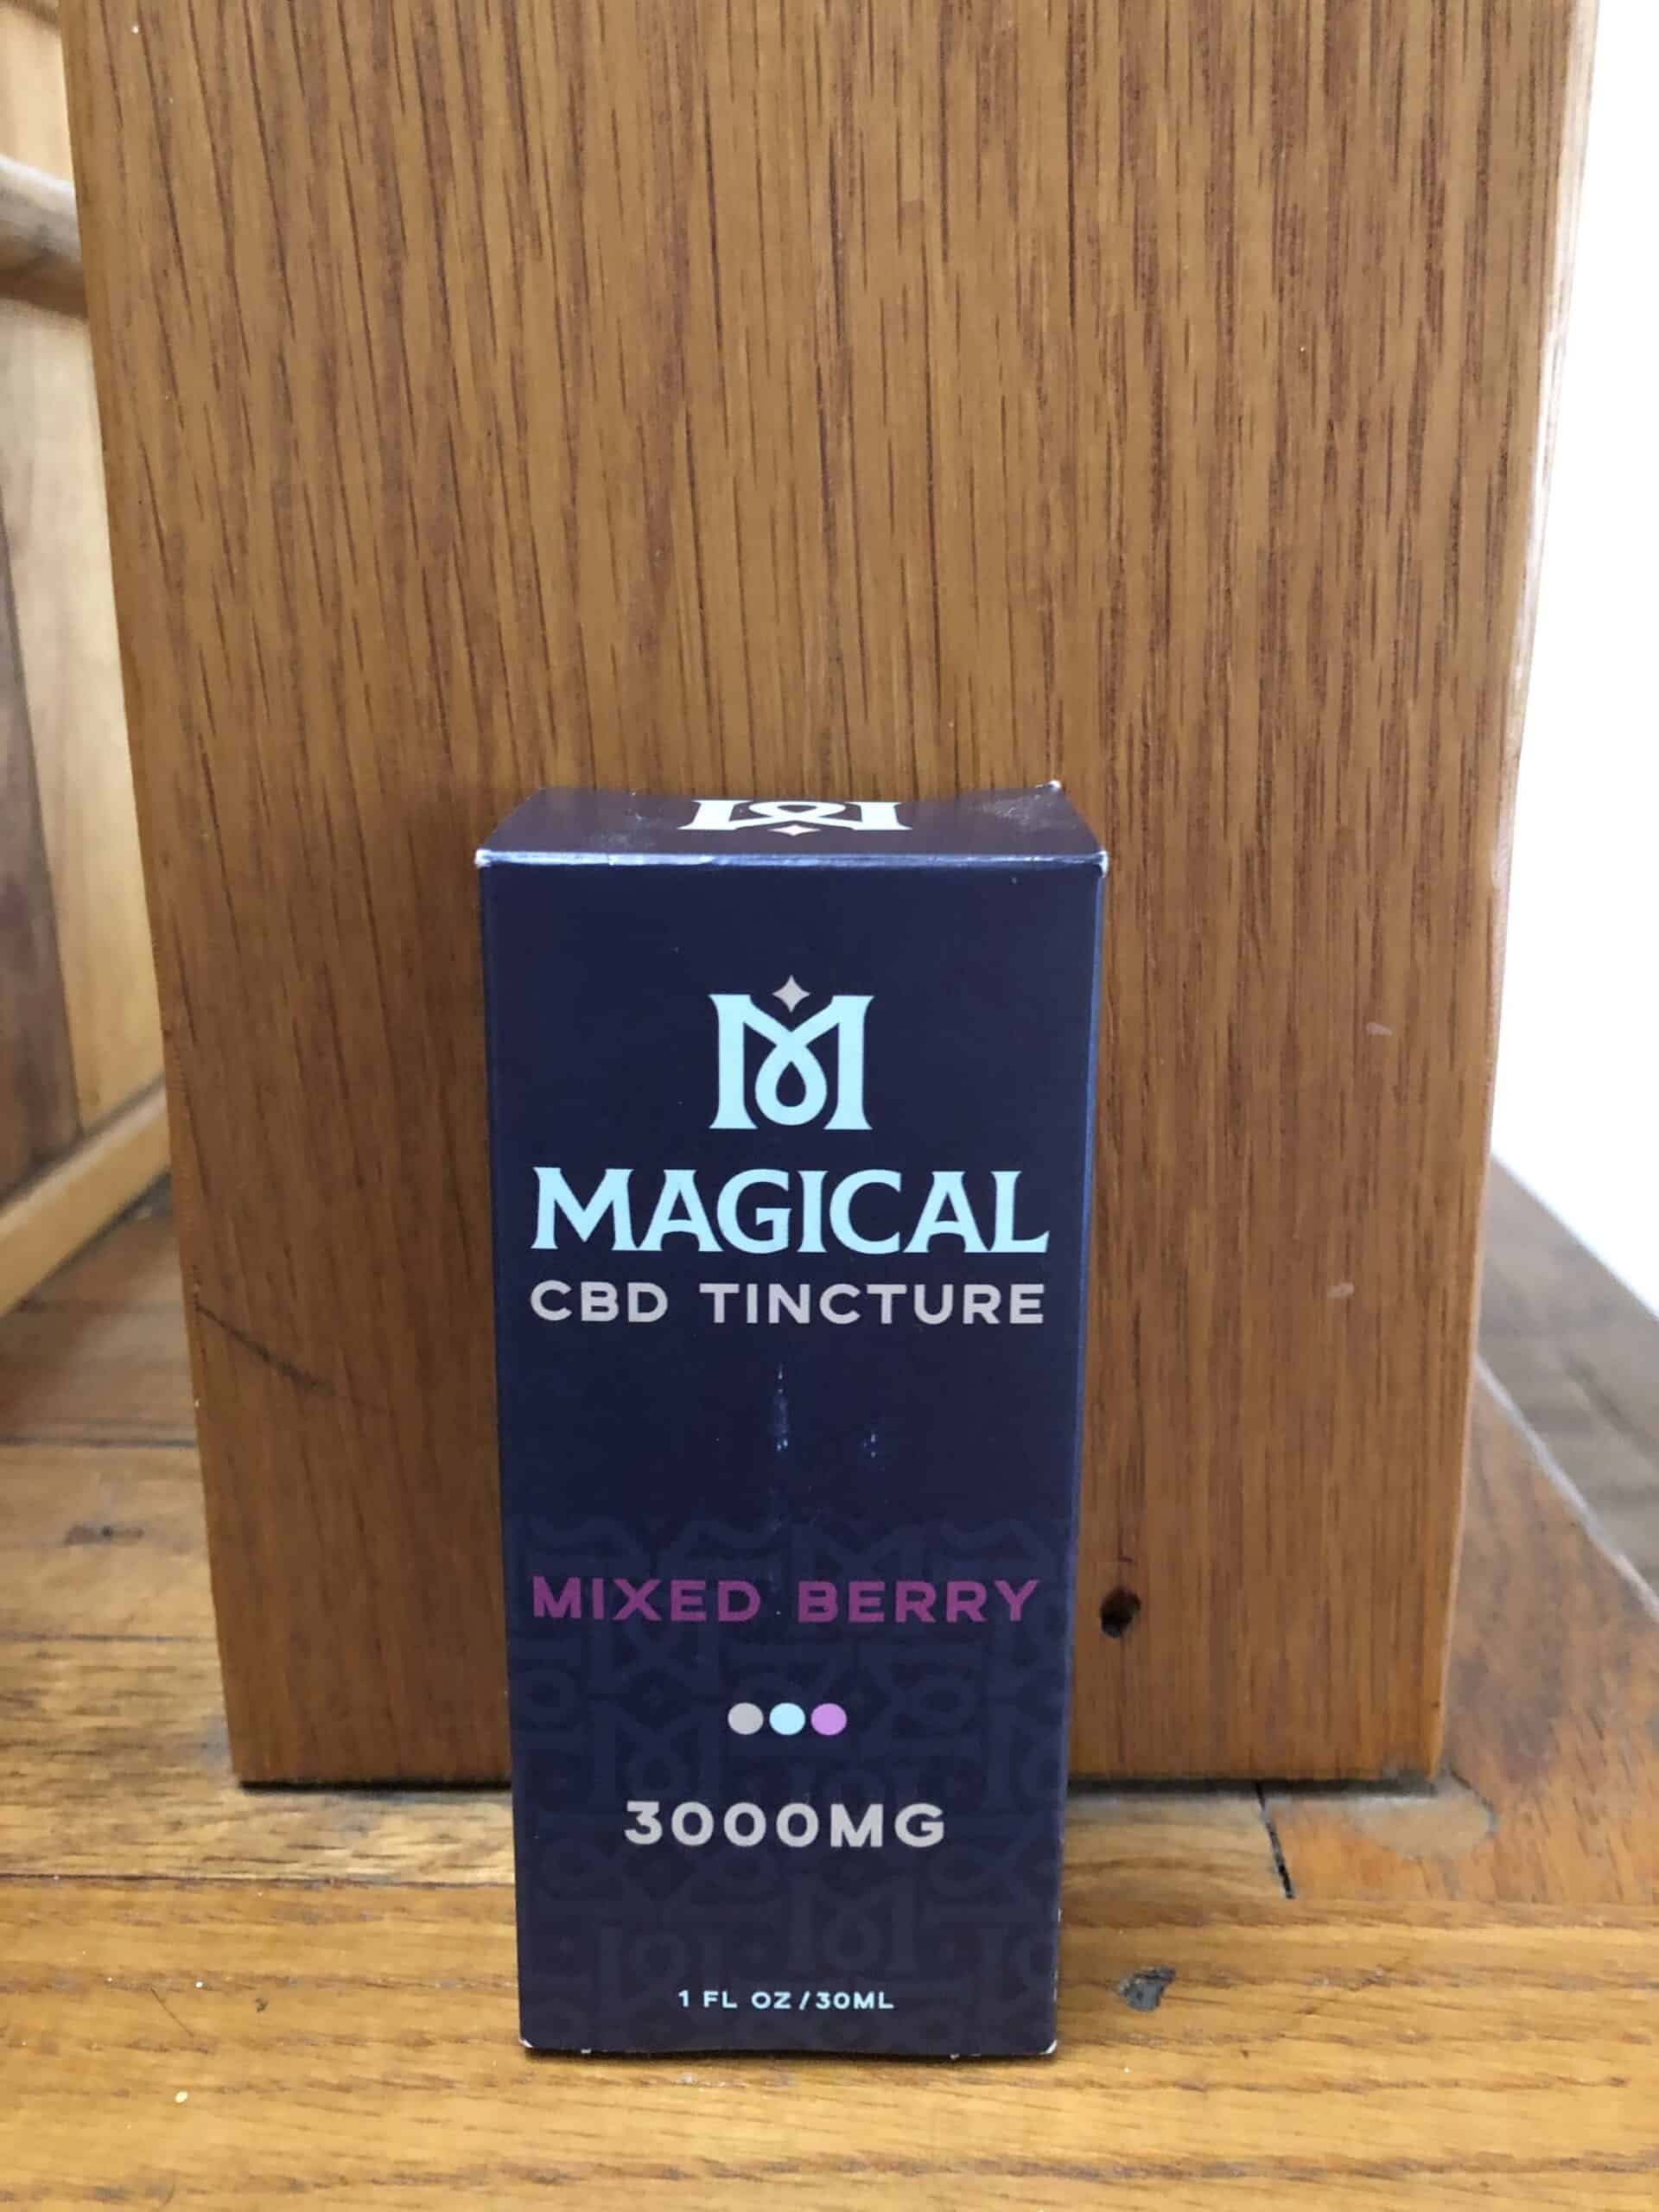 Magical CBD Tincture Mixed Berry 300 MG Save On Cannabis Review